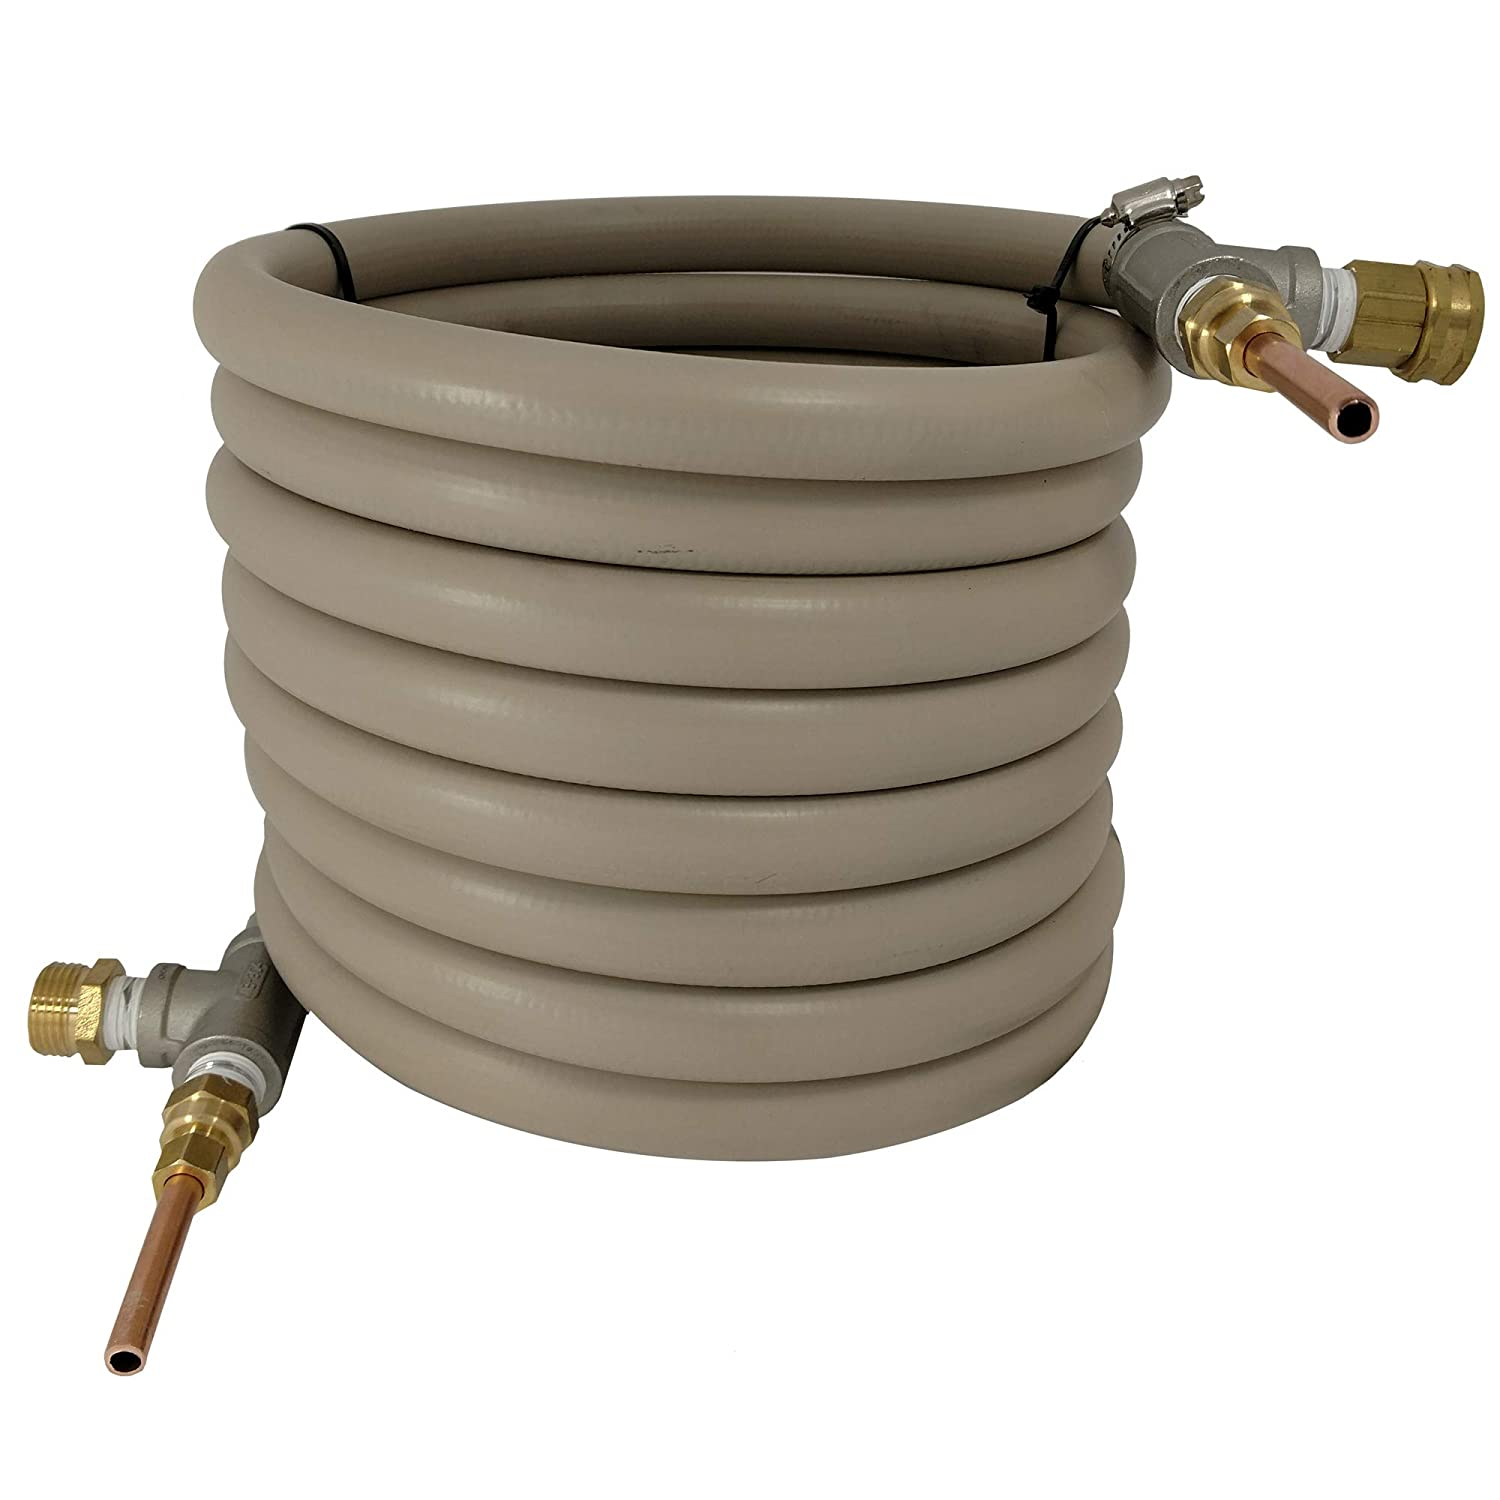 Super Efficient 25' Counterflow Wort Chiller - NY Brew Supply WCF25-DC